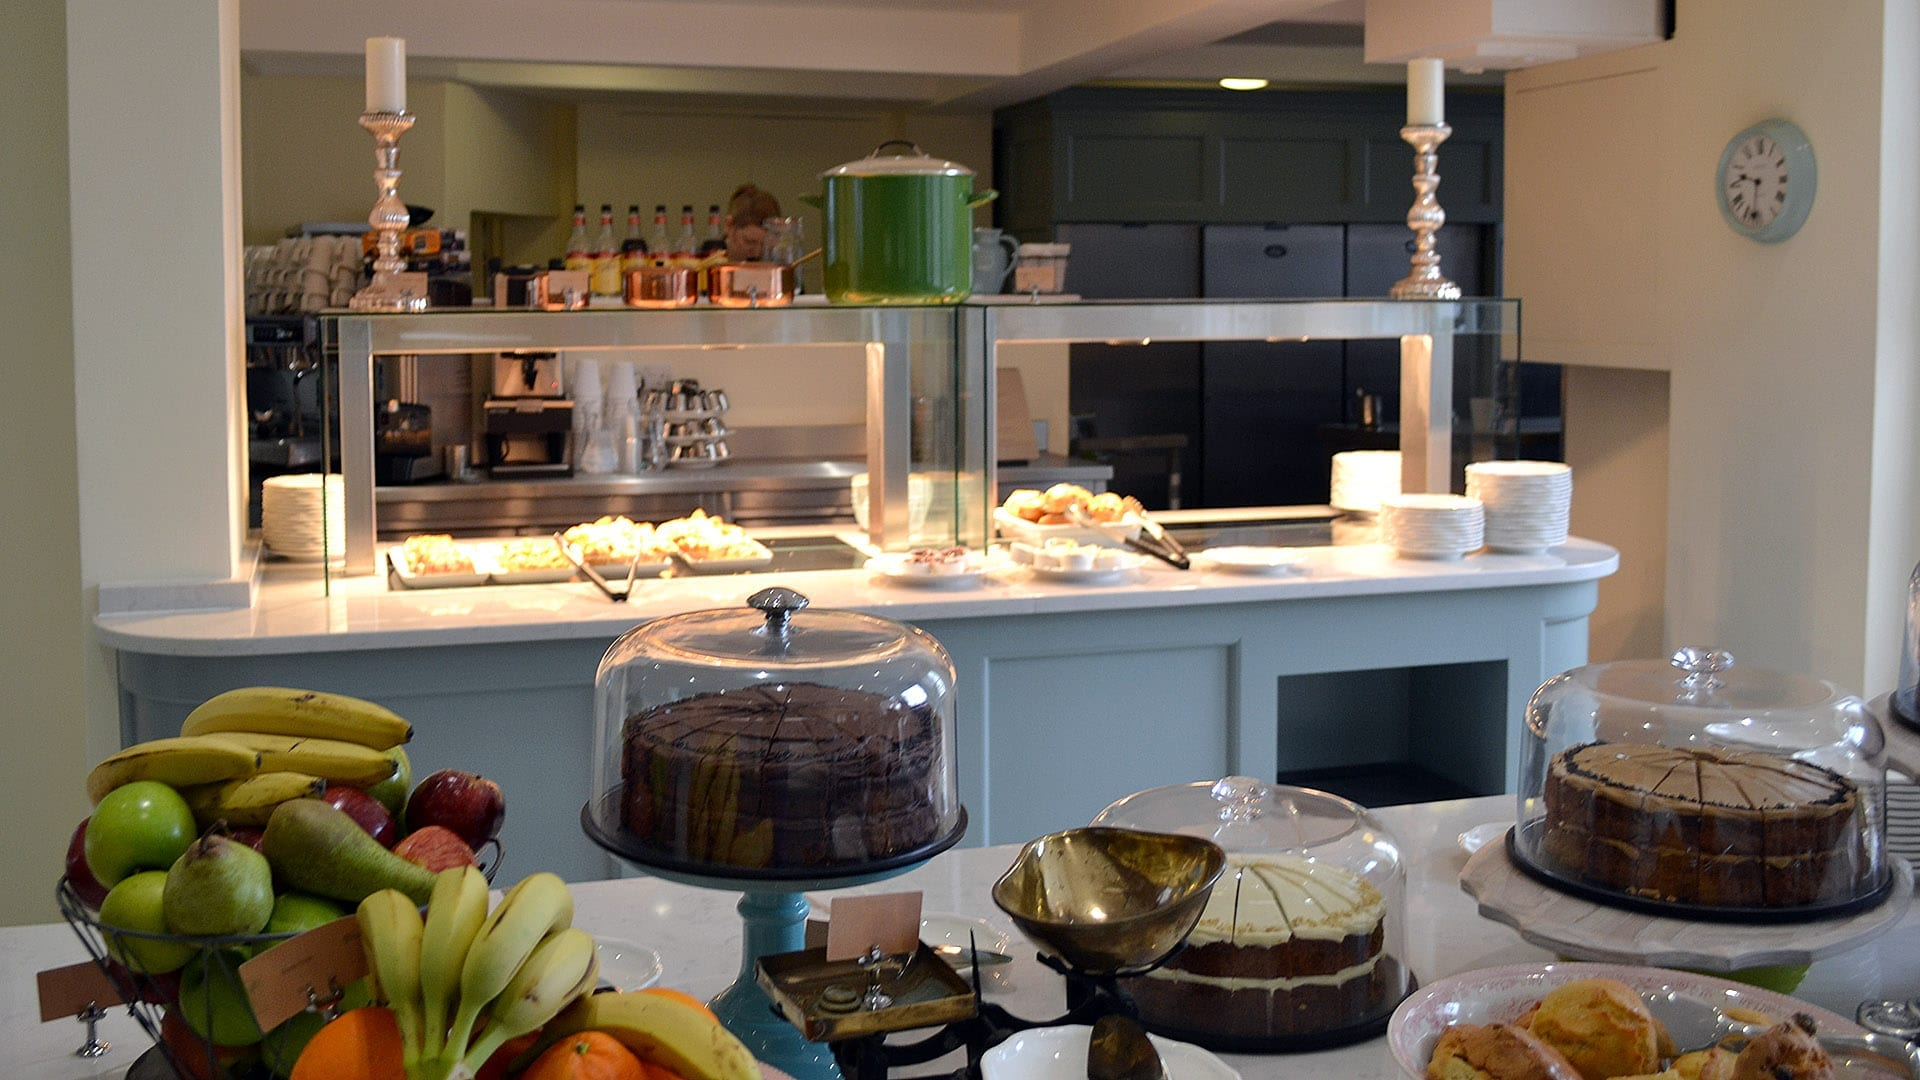 Catering Equipment and Commercial Kitchen Equipment